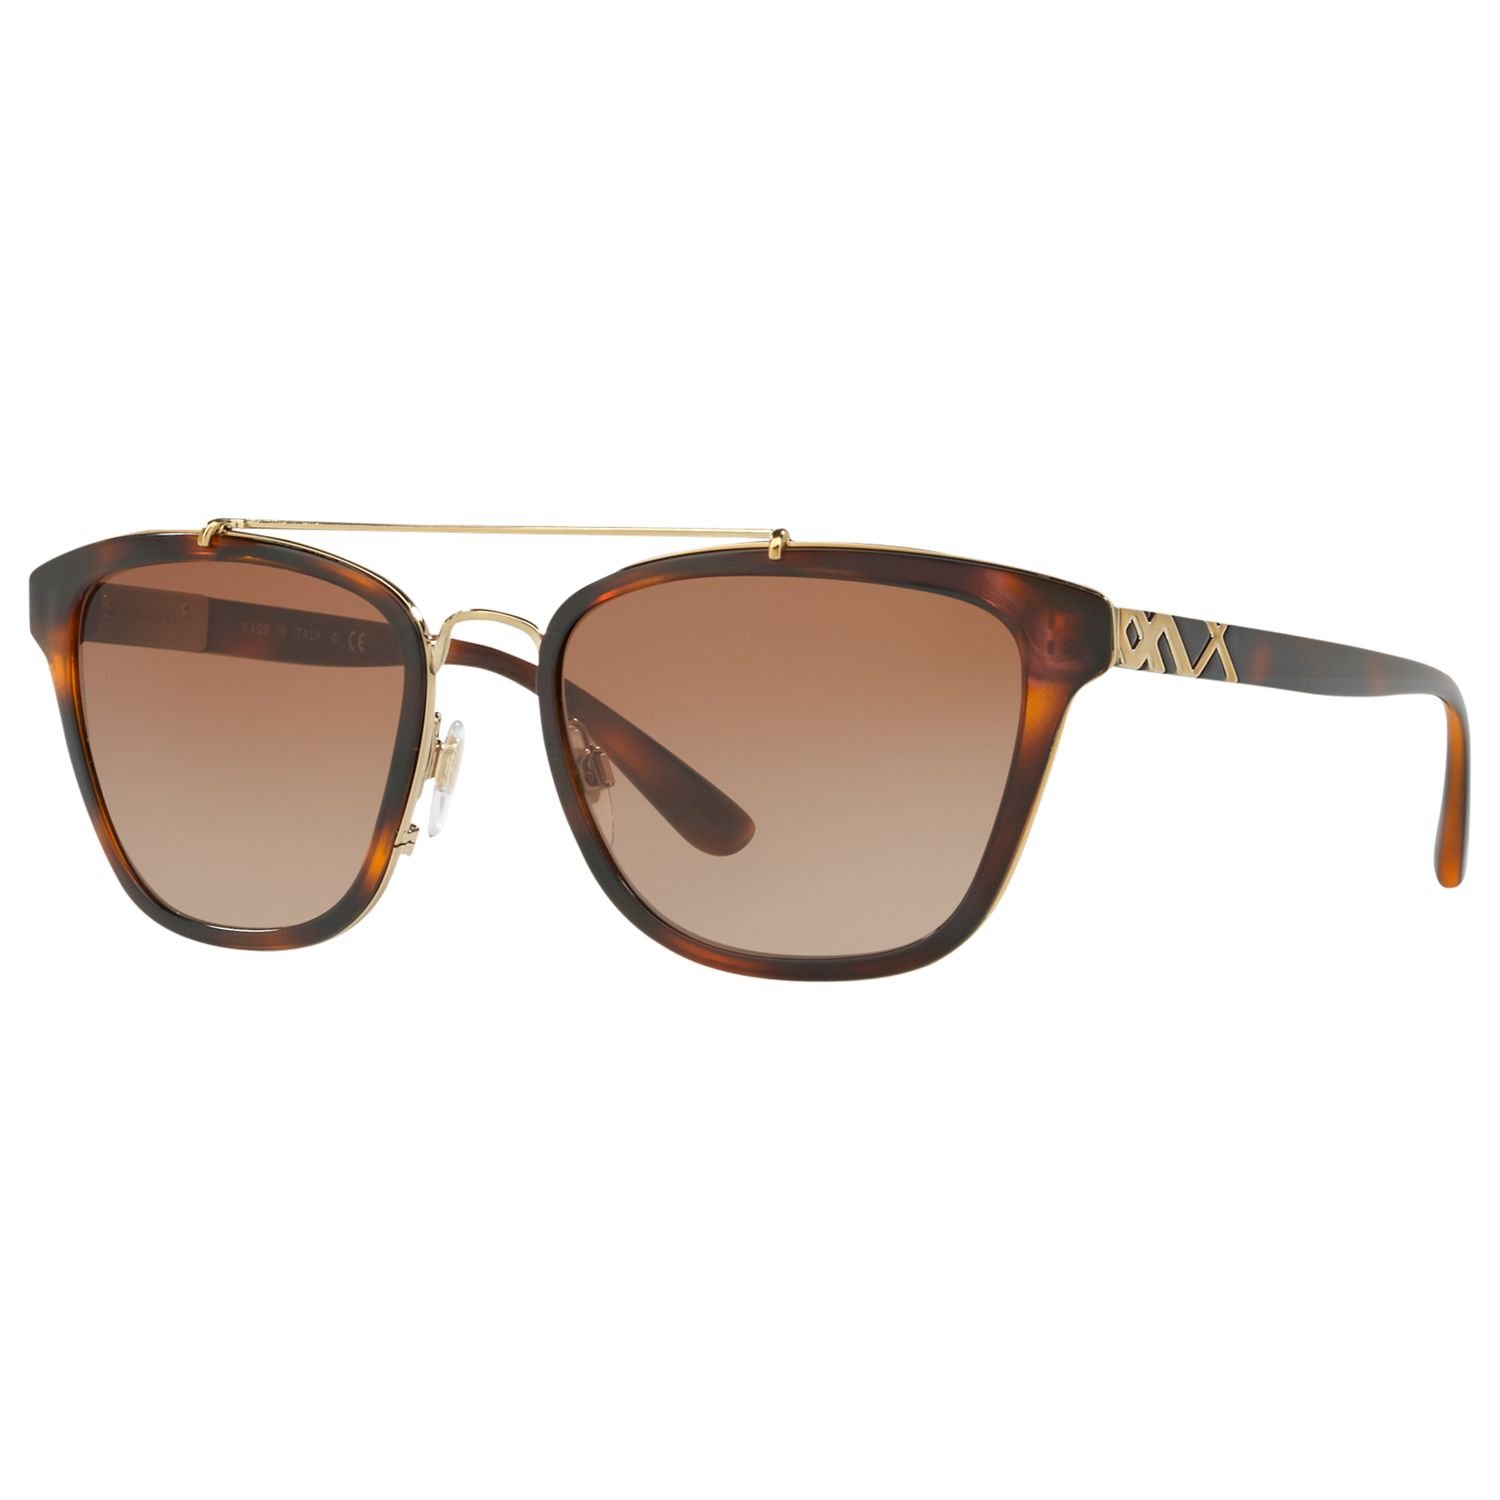 Burberry Burberry BE4240 D-Frame Sunglasses, Tortoise/Brown Gradient